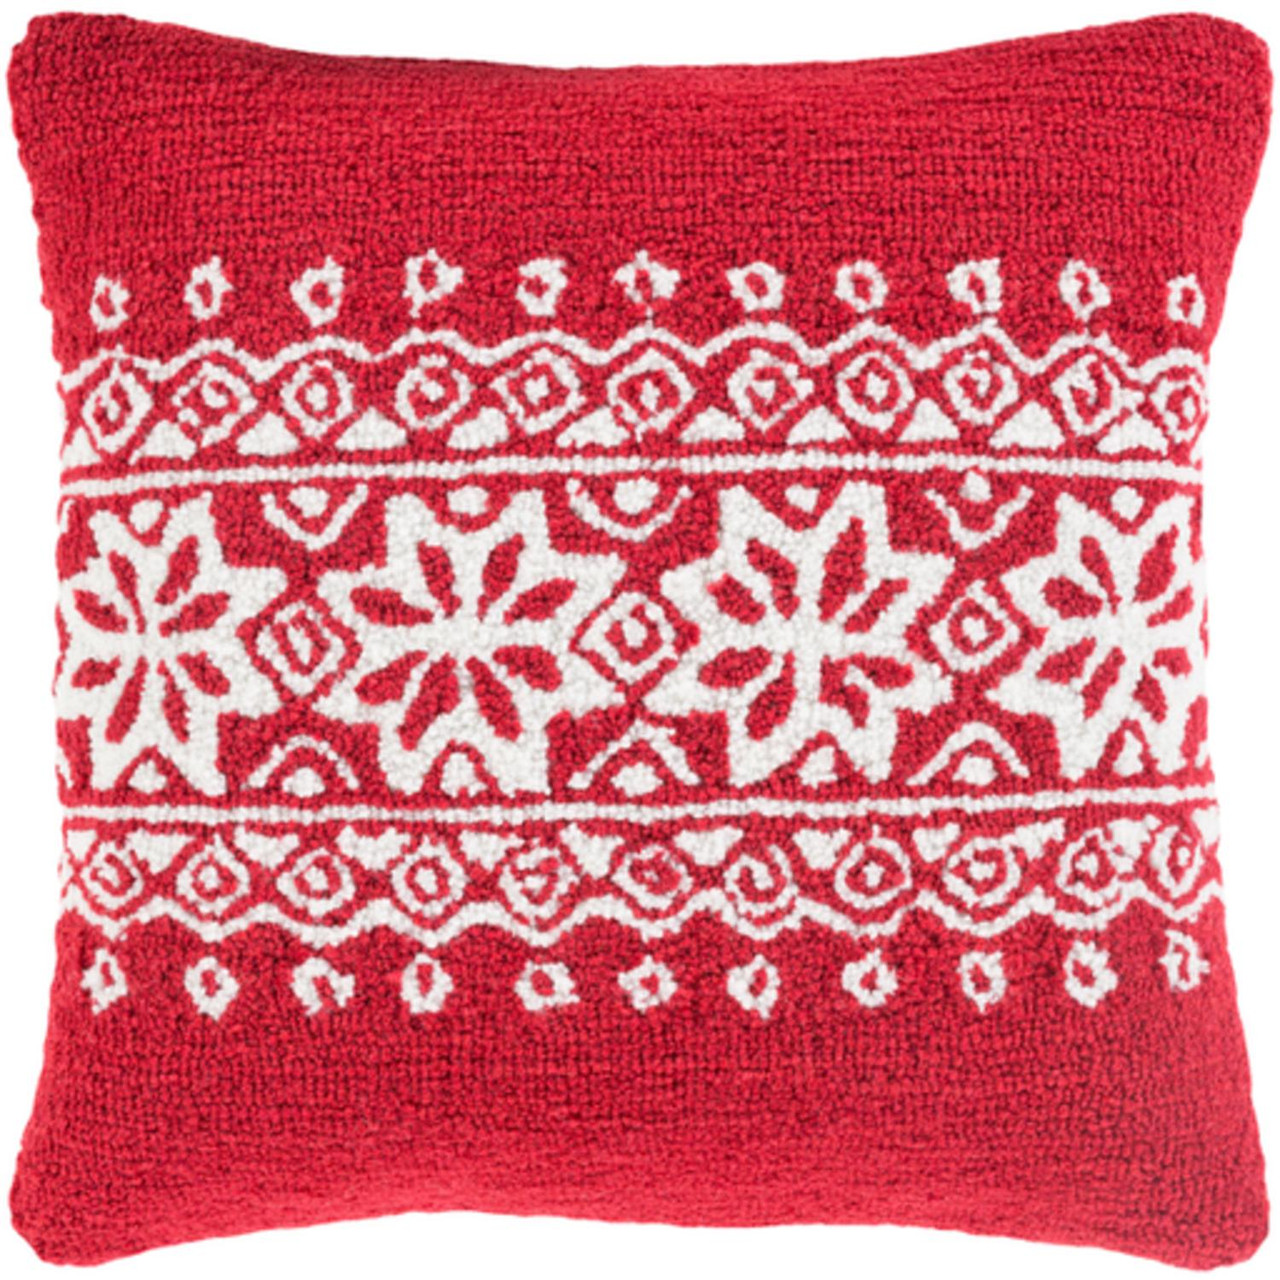 18 santa red and snowy white decorative snowflake christmas throw pillow cover 32635513 - Christmas Decorative Pillow Covers